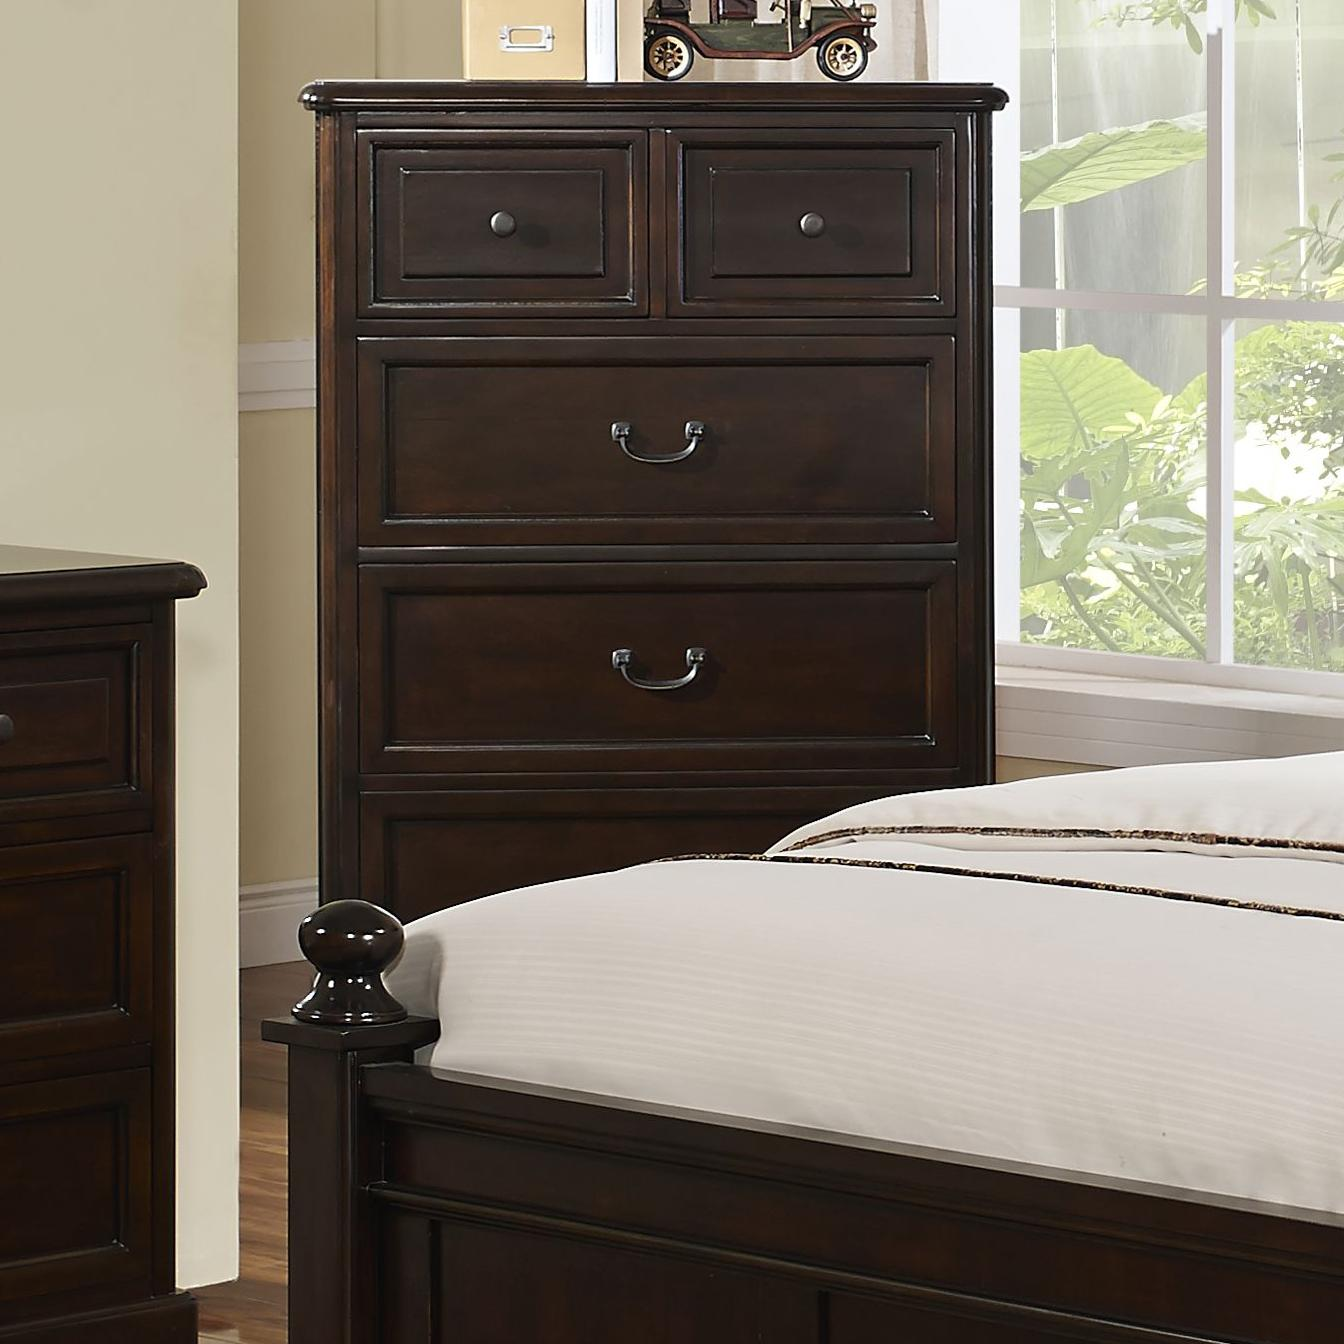 New Classic Canyon Ridge Chest - Item Number: 05-230-072